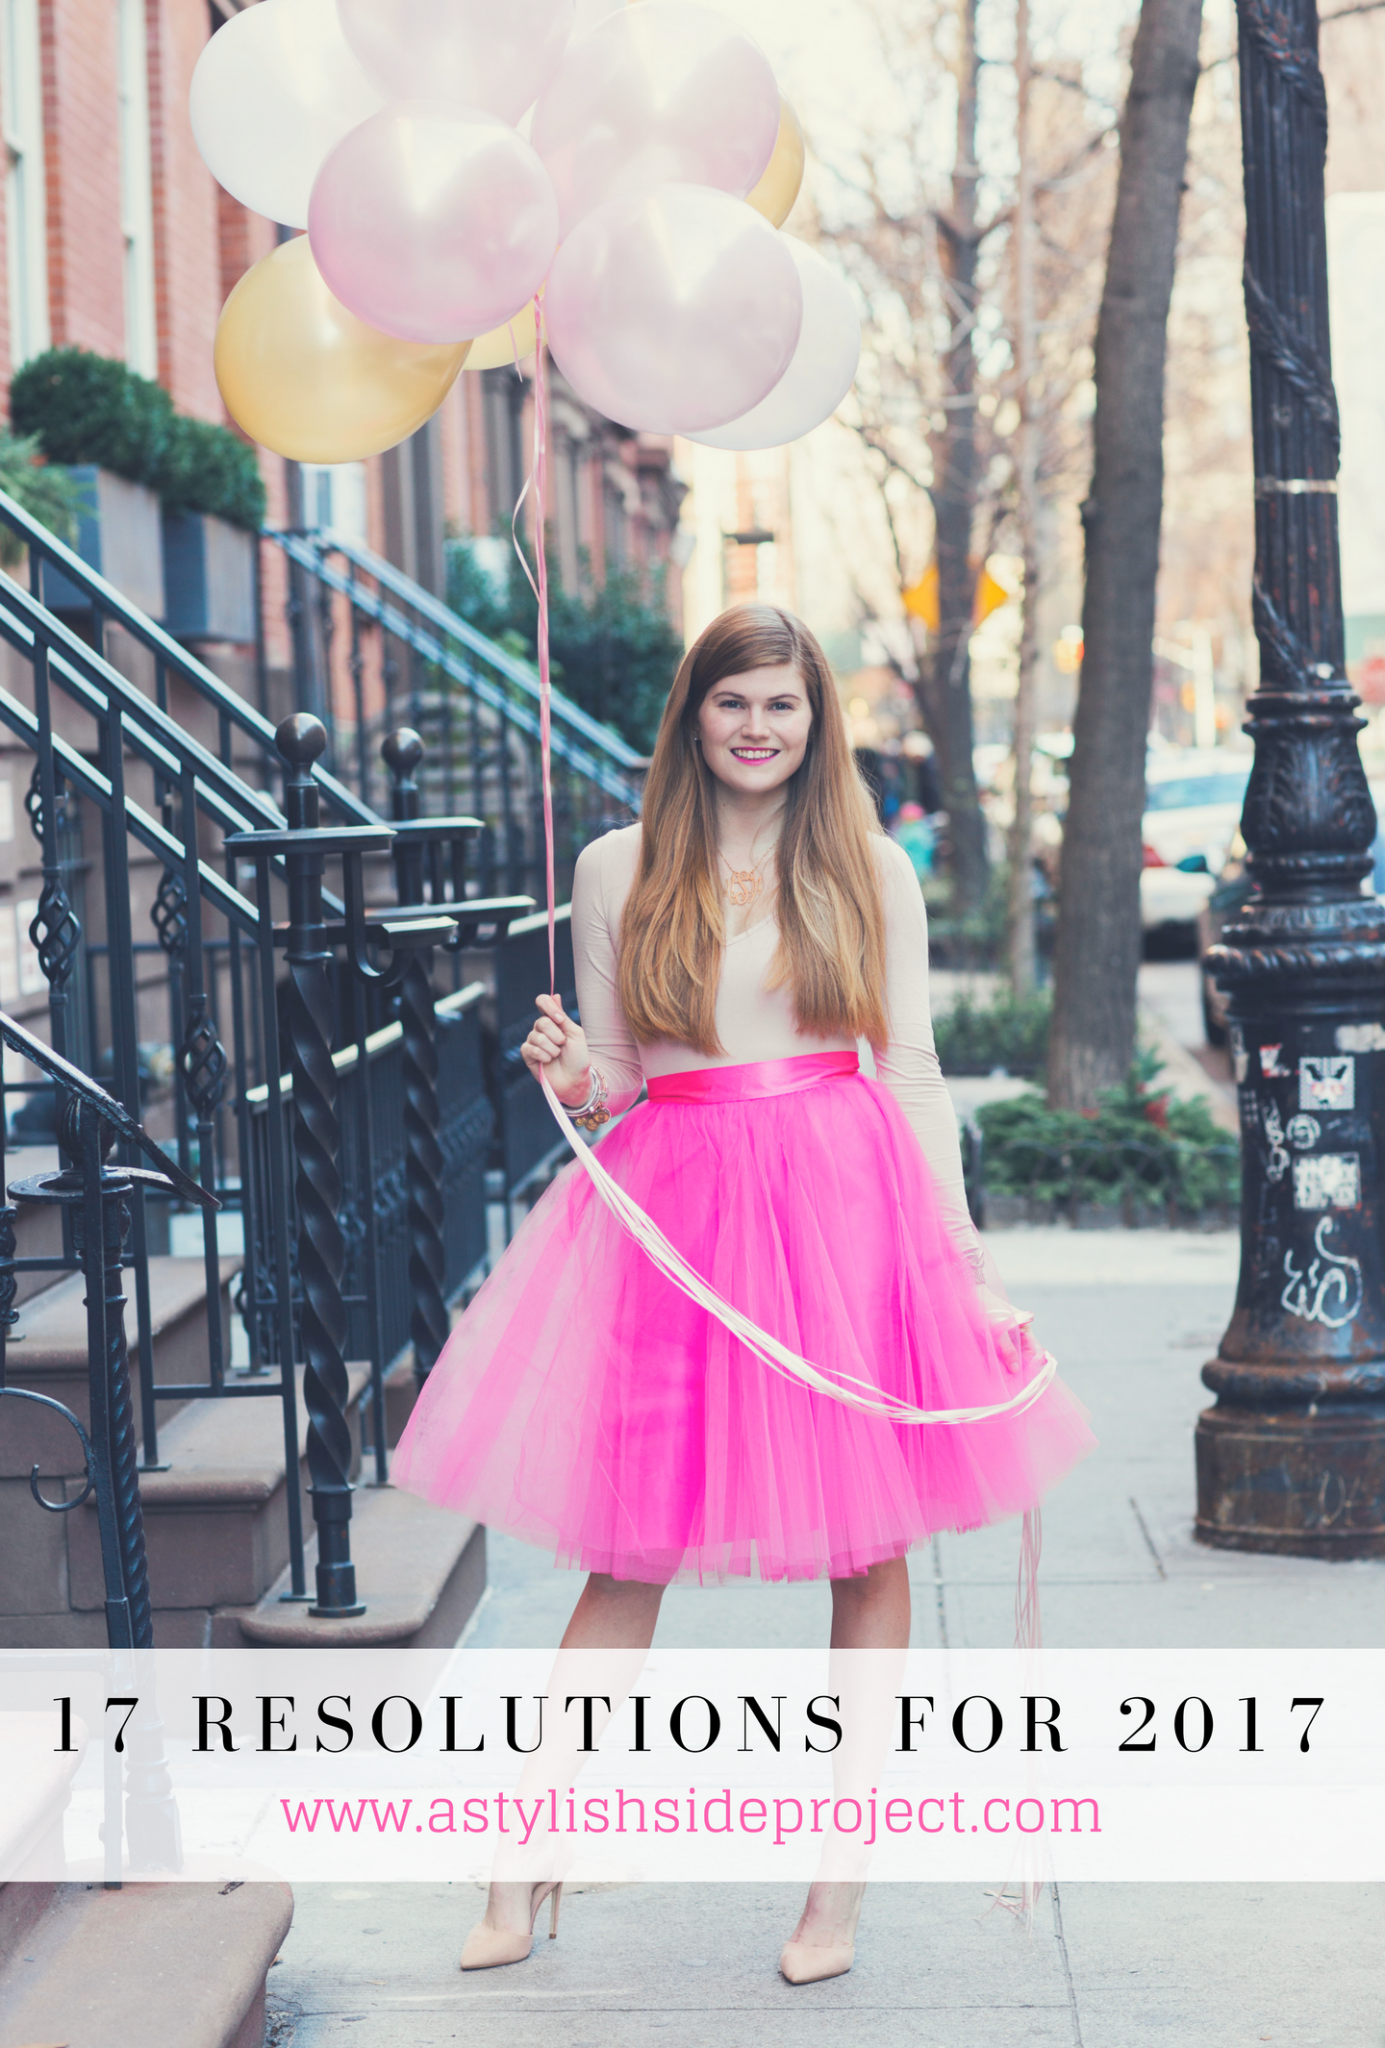 Lifestyle blogger Mollie Sheperdson shares her 2017 resolutions